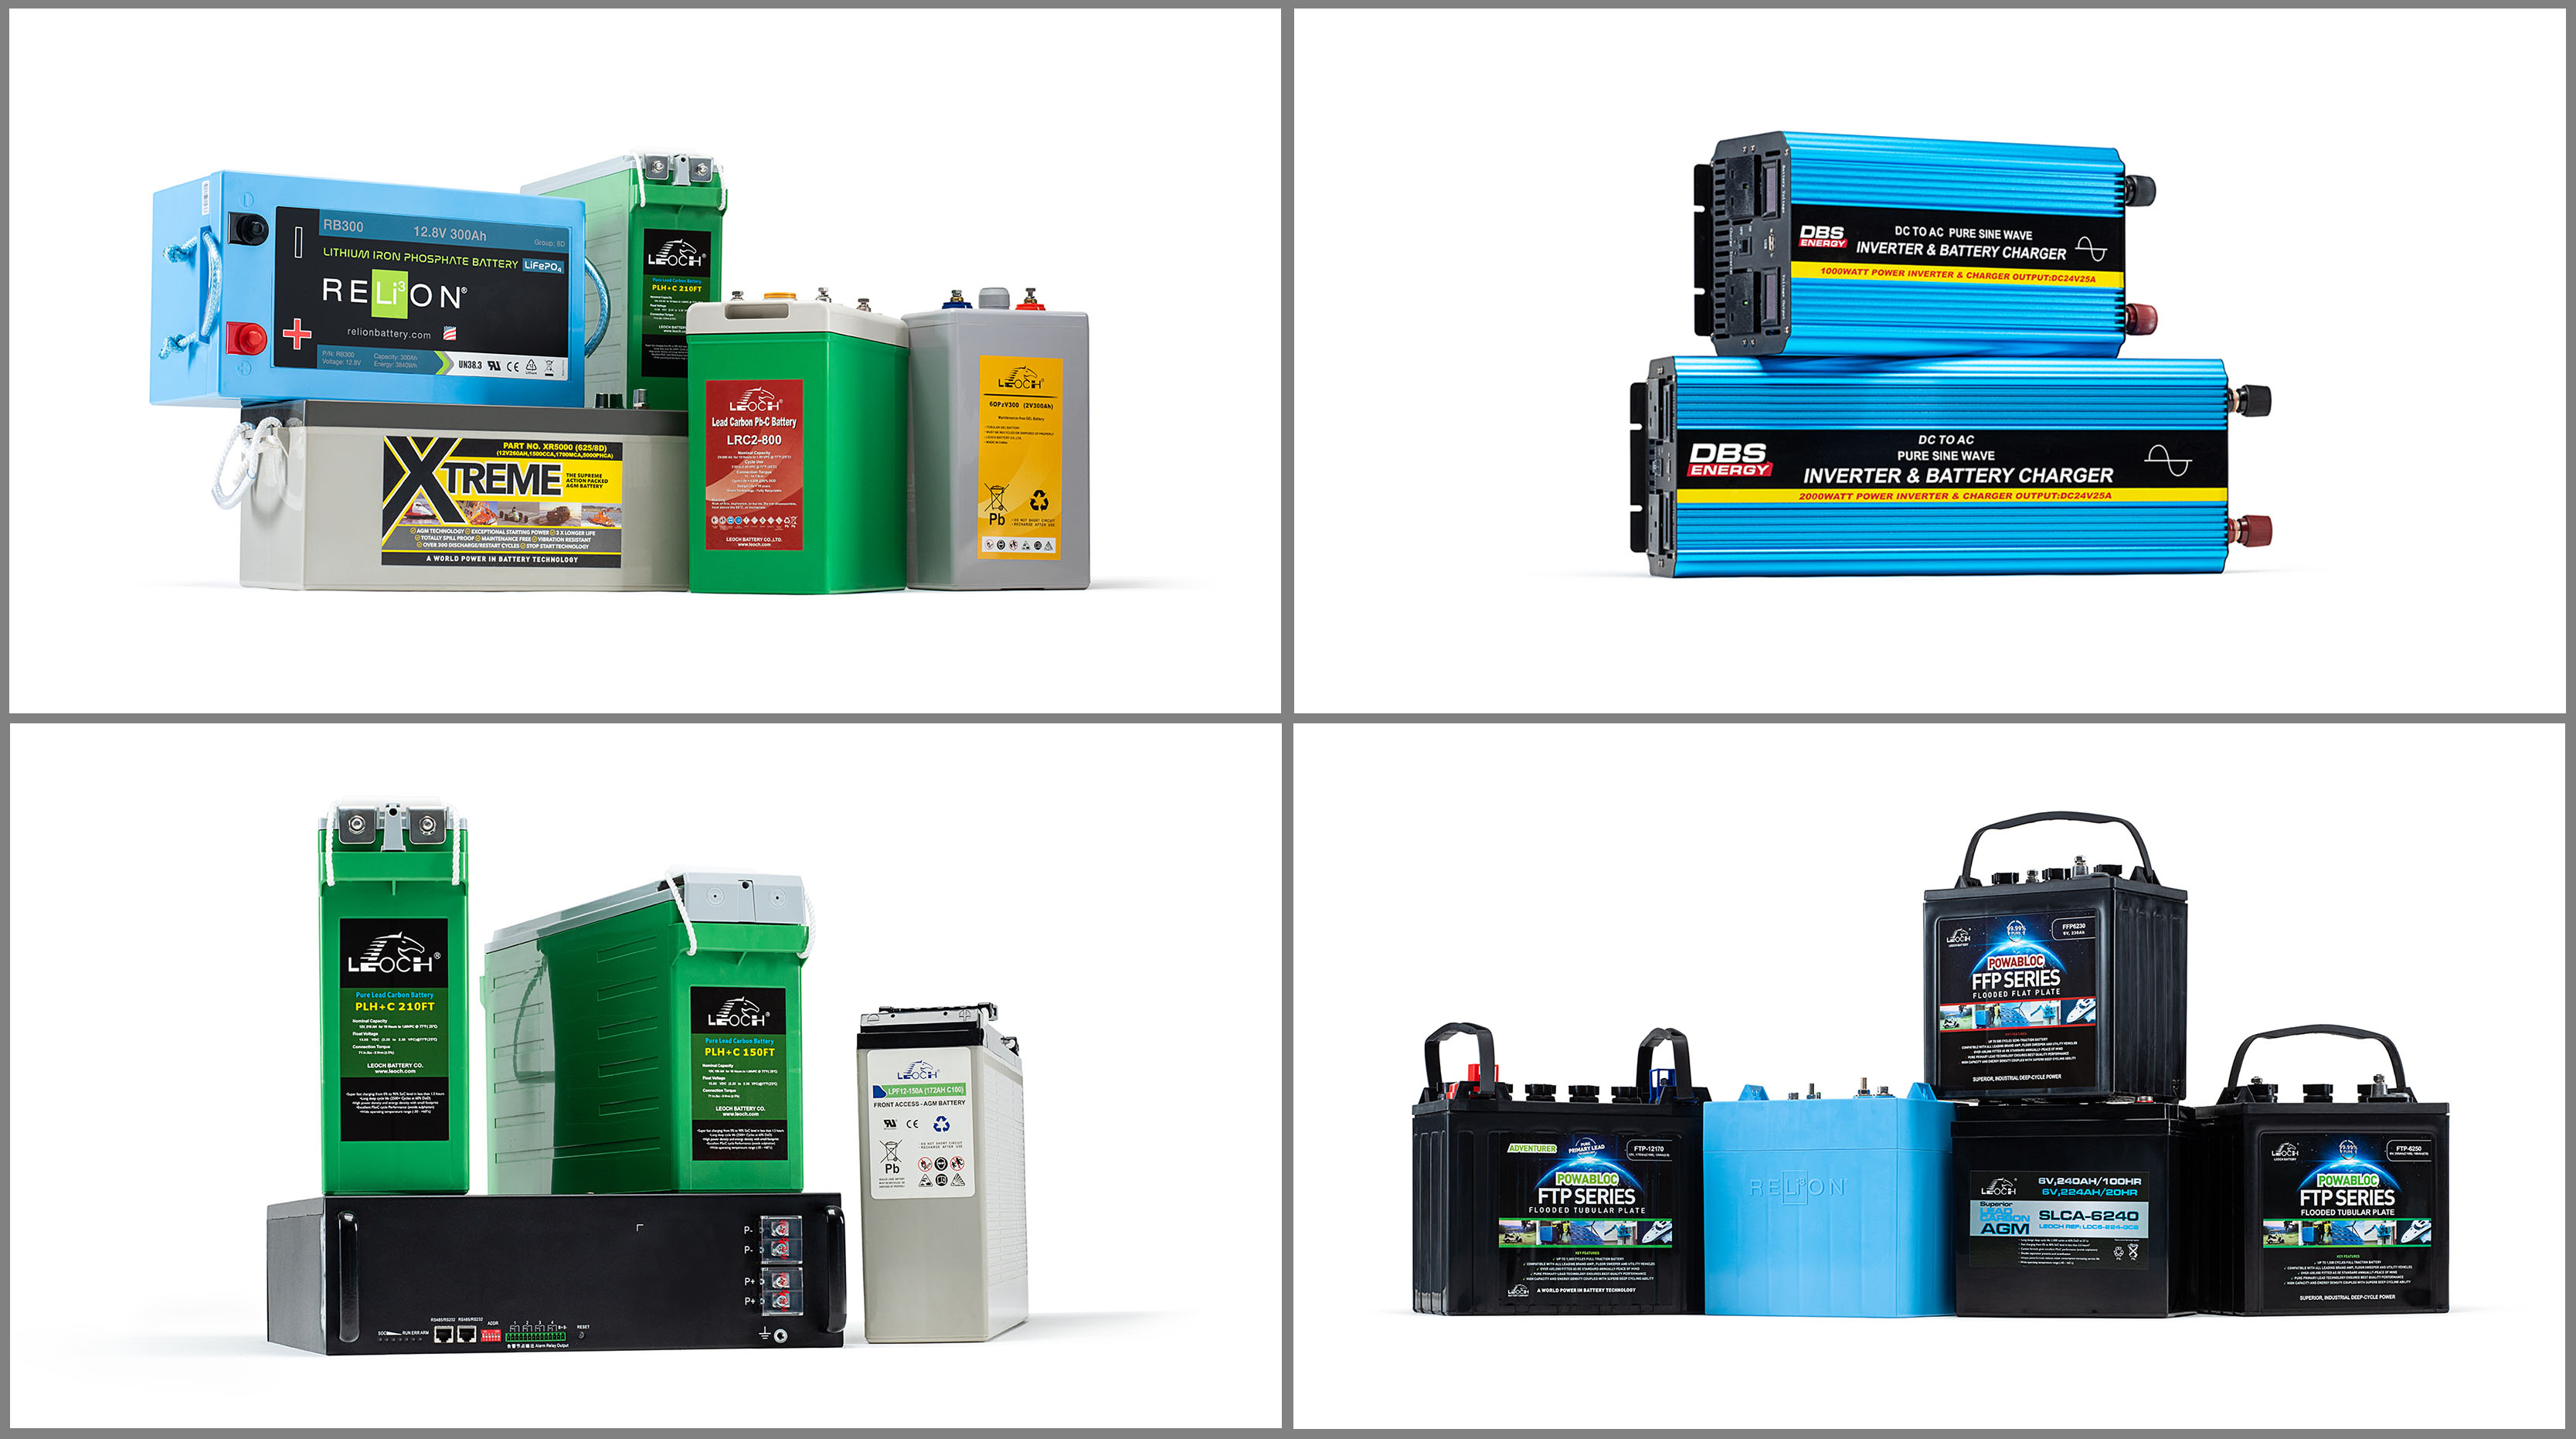 dbs leoch batteries photography